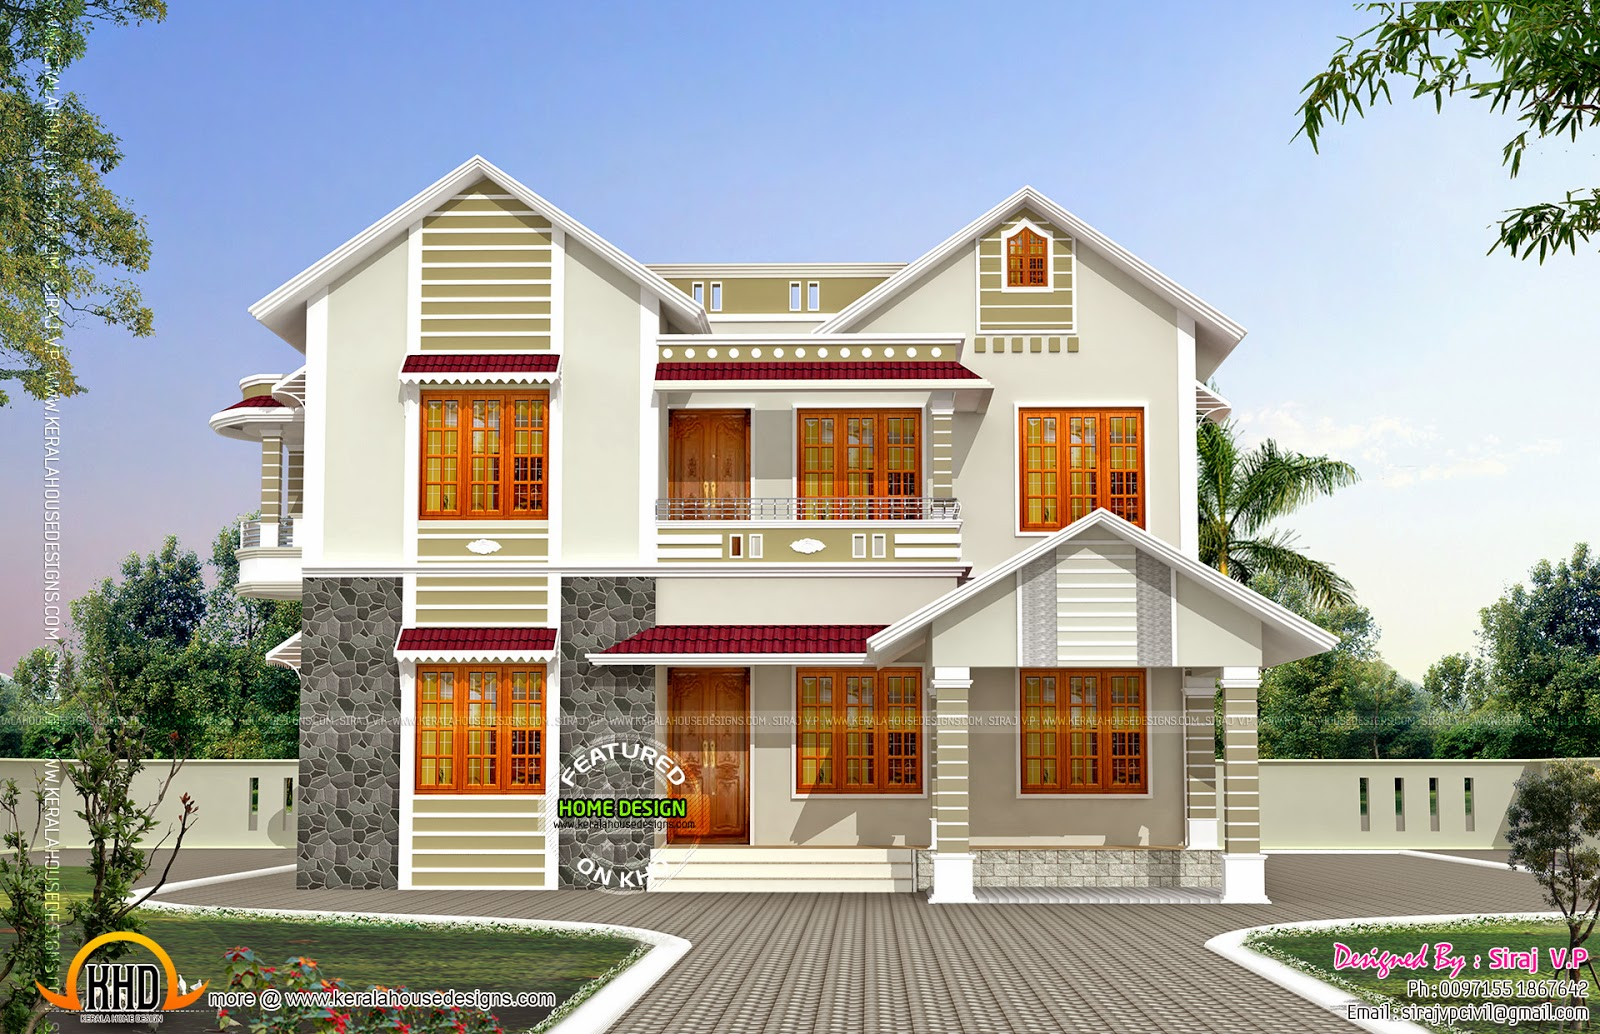 Front View Elevation Of House Plans : Home design front view images modern house